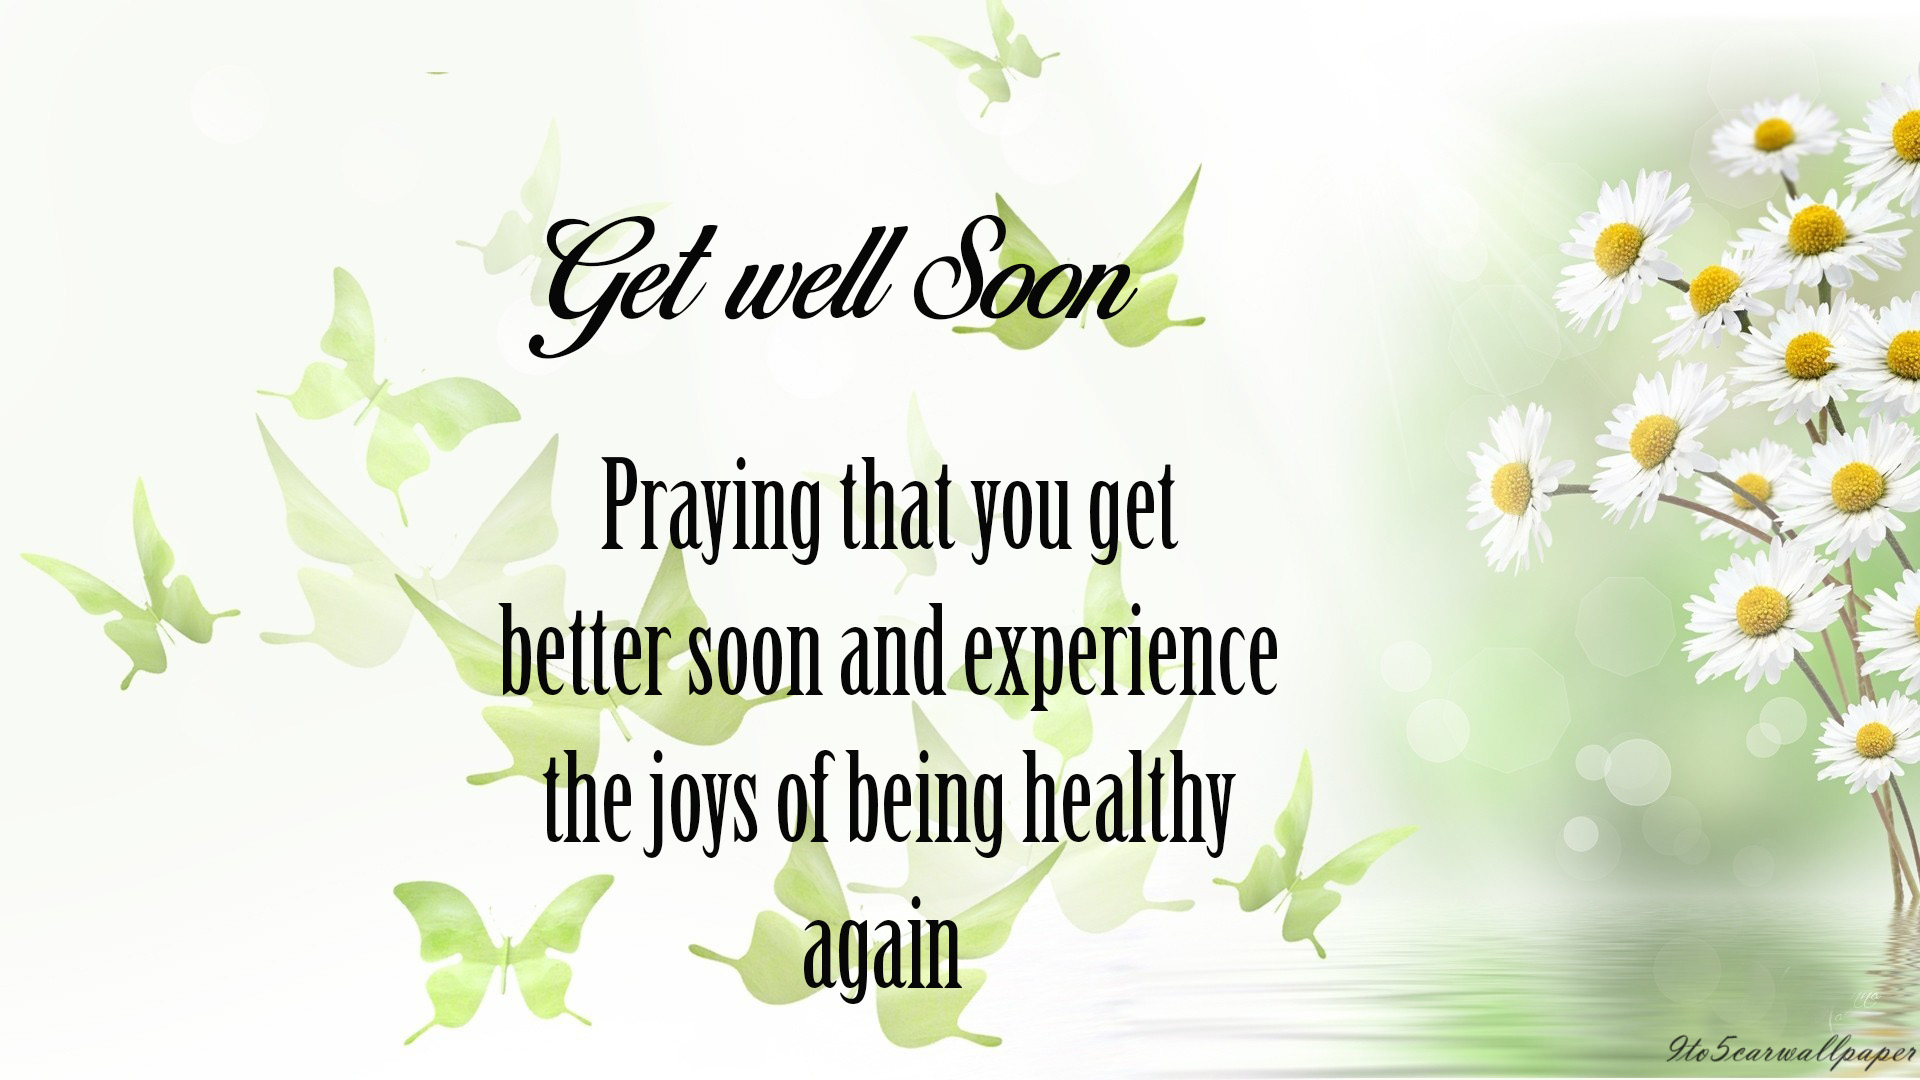 Get Better Soon Wishes Amp Quotes 2018